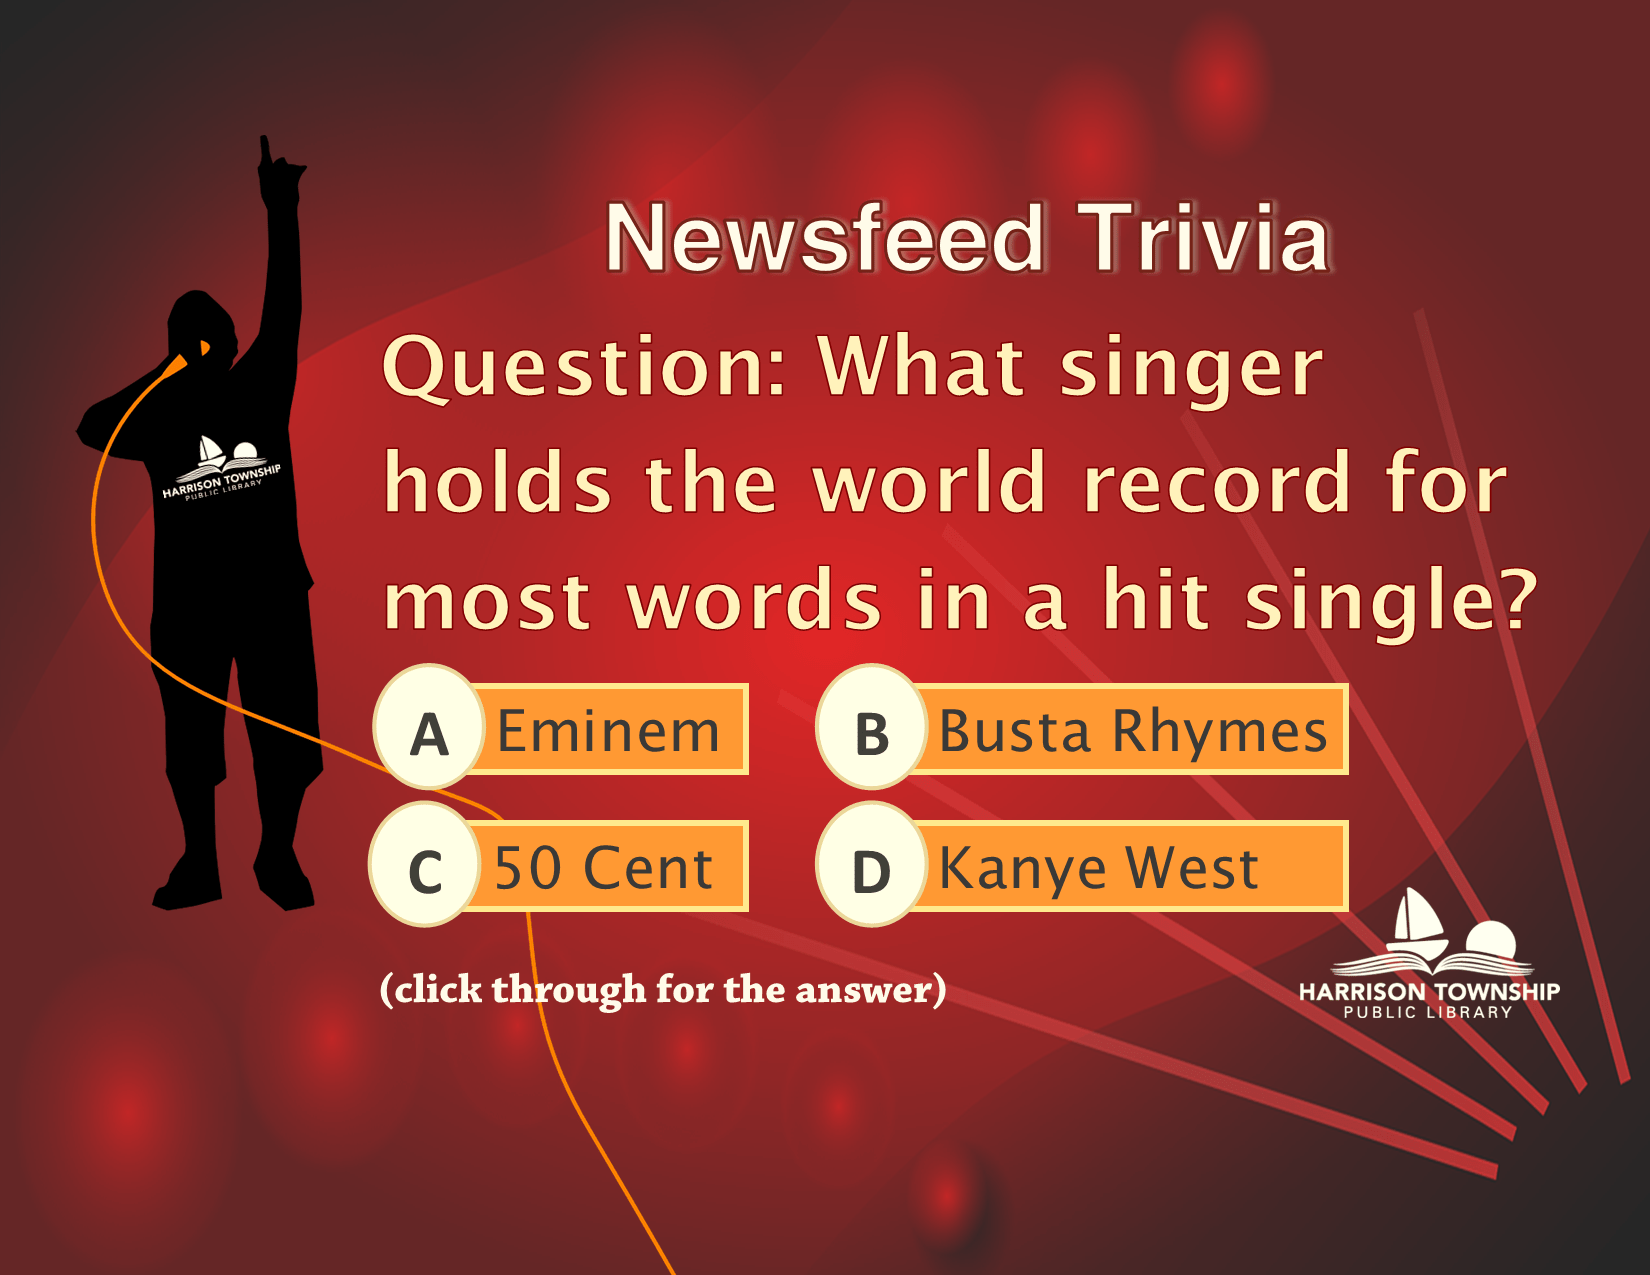 What singer holds the world record for most words in a hit single? A: Eminem B. Busta Rhymes C. 50 Cent D. Kanye West